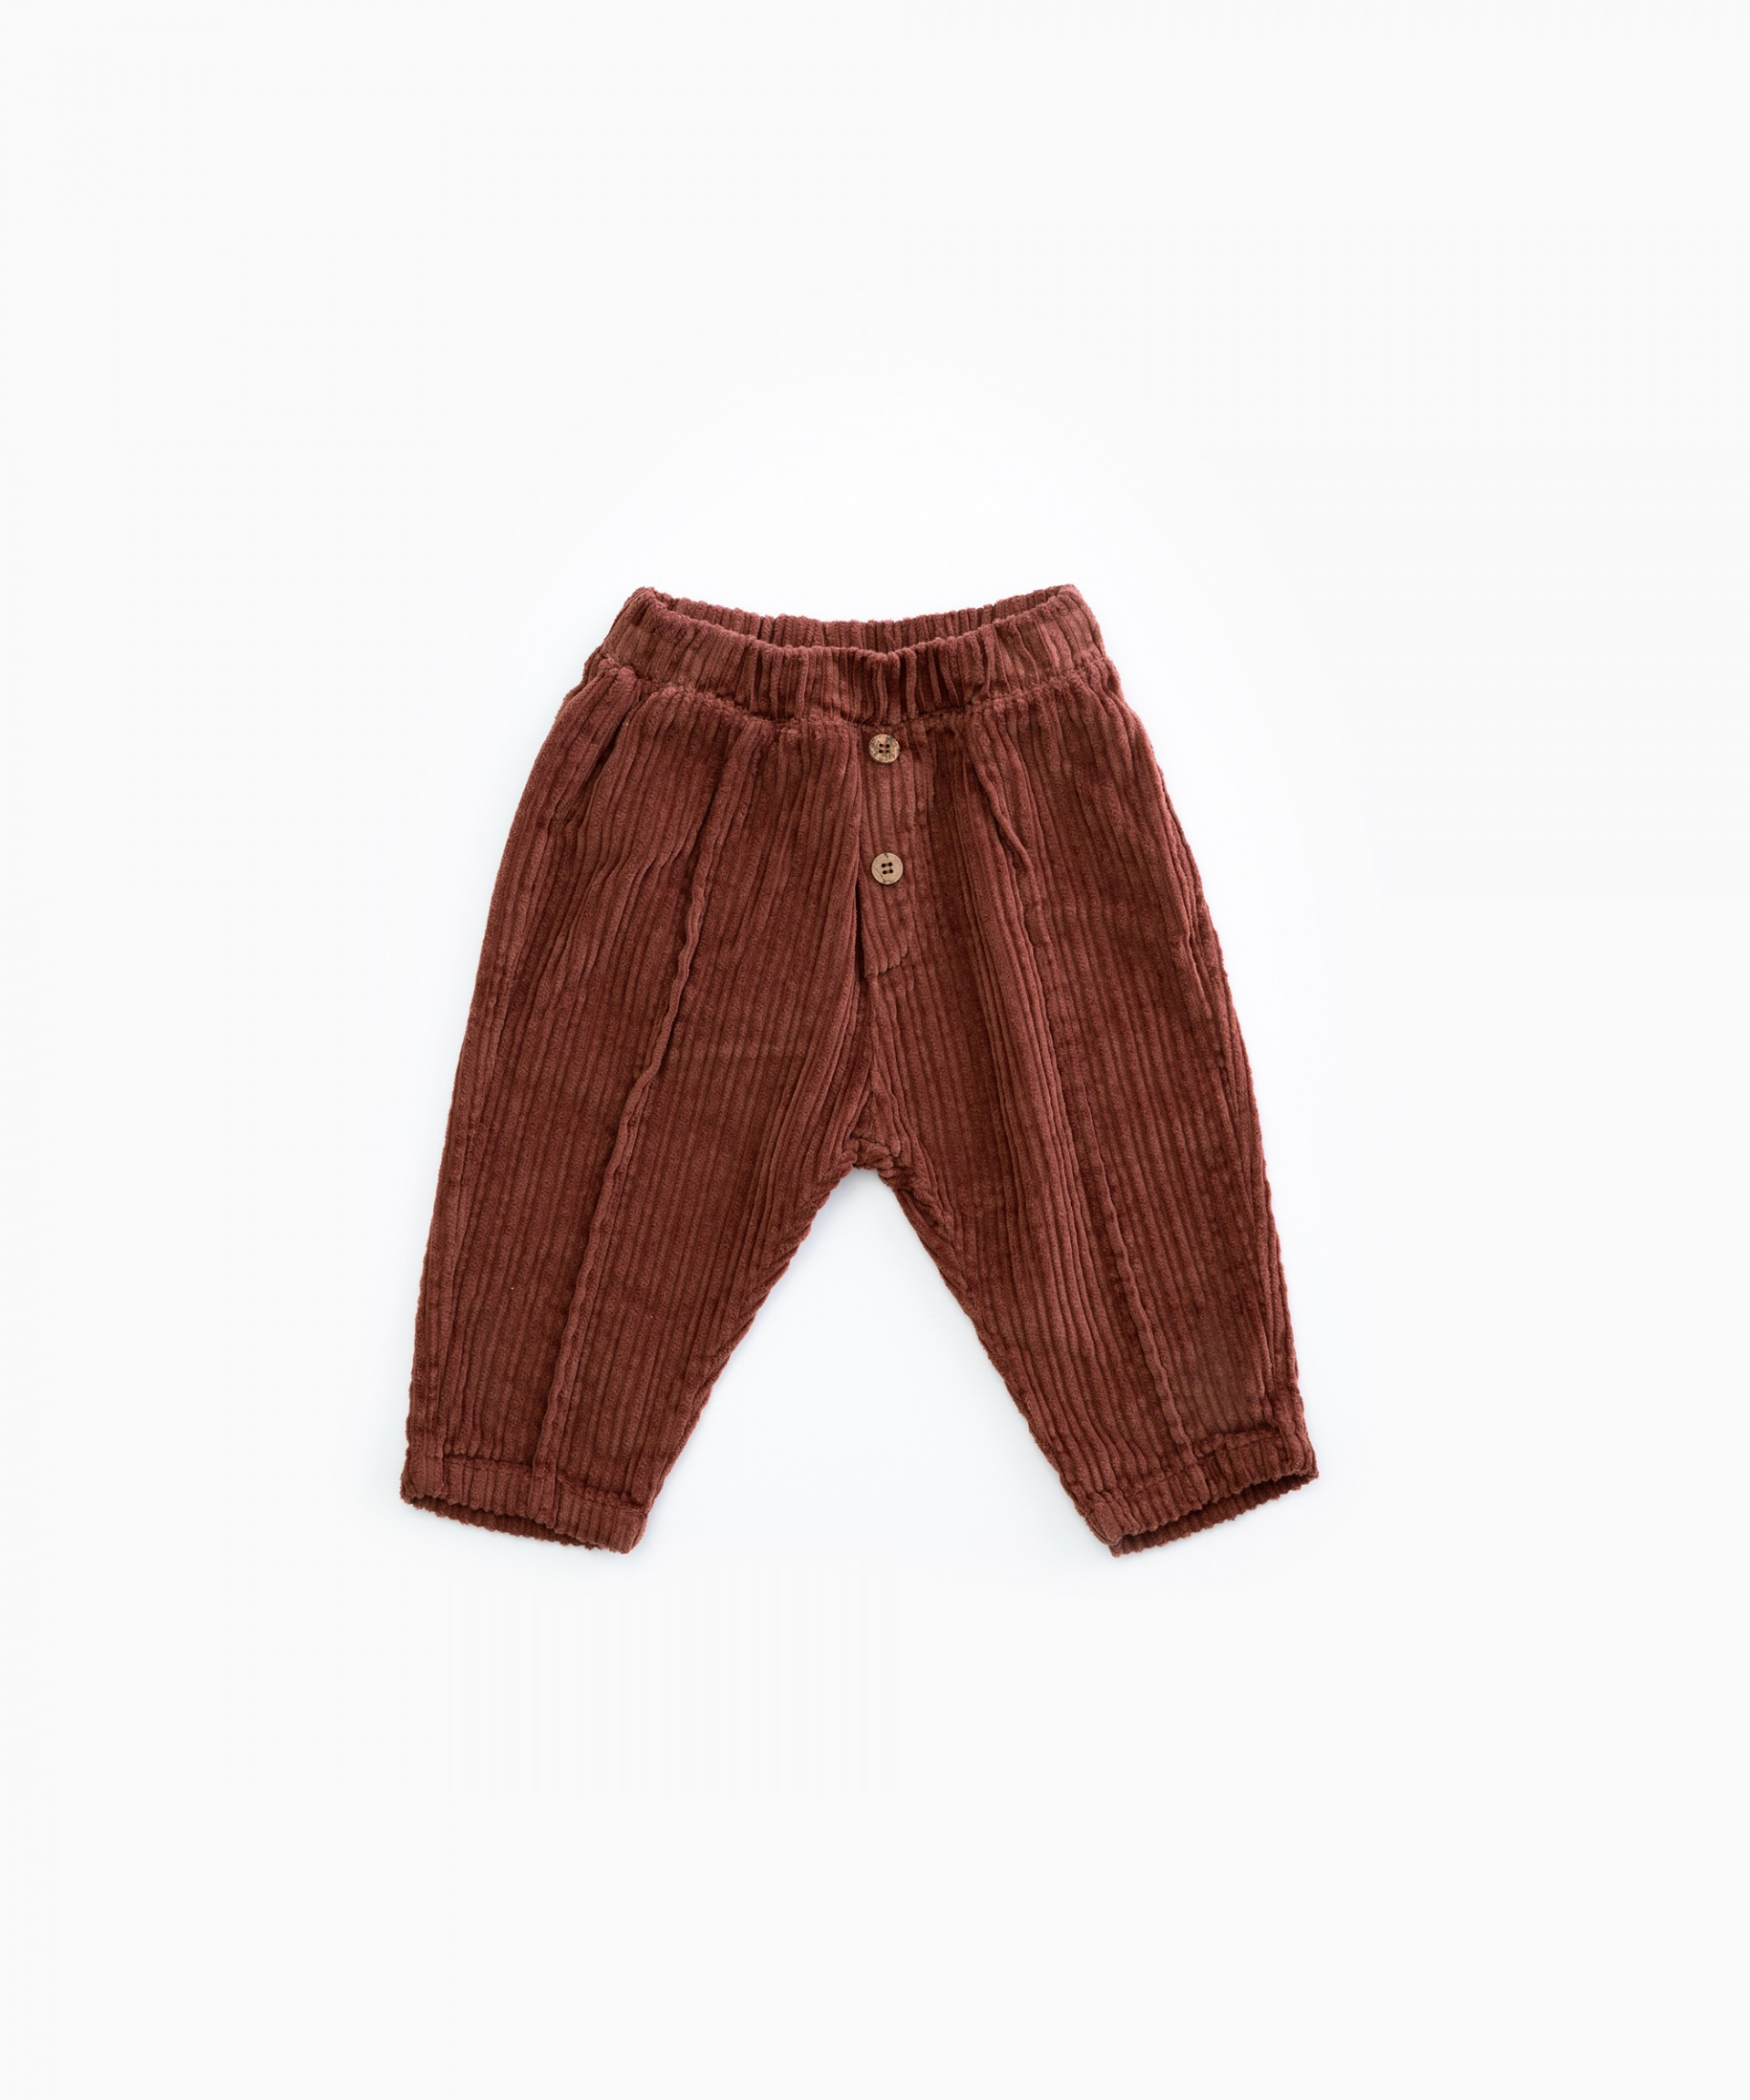 Corduroy trousers with decorative buttons | Woodwork